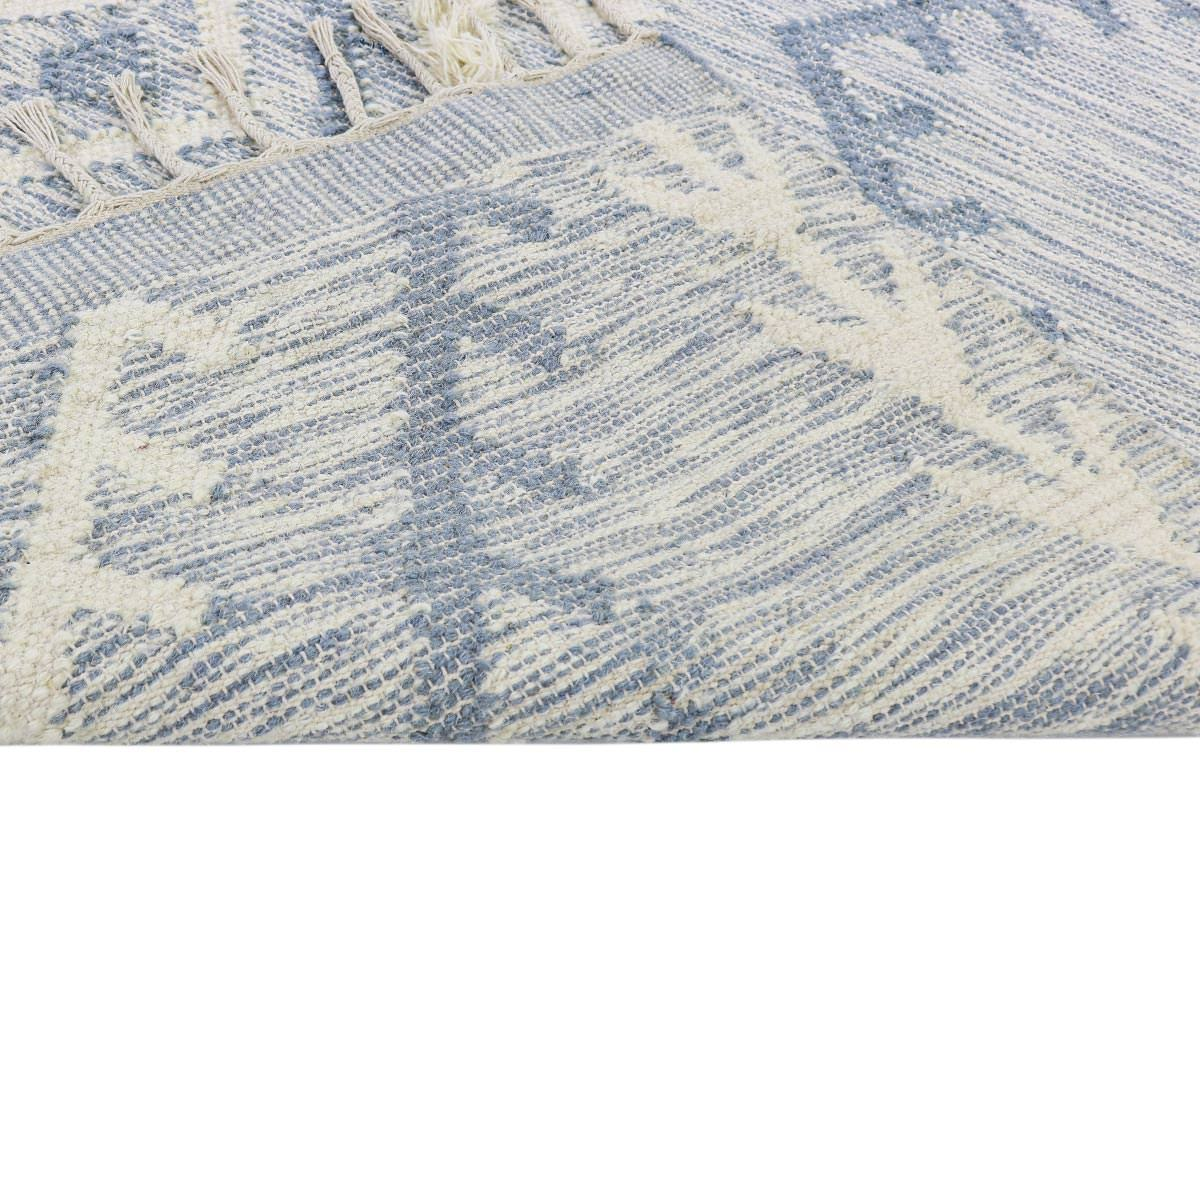 Tangier Rug 05 light blue 4